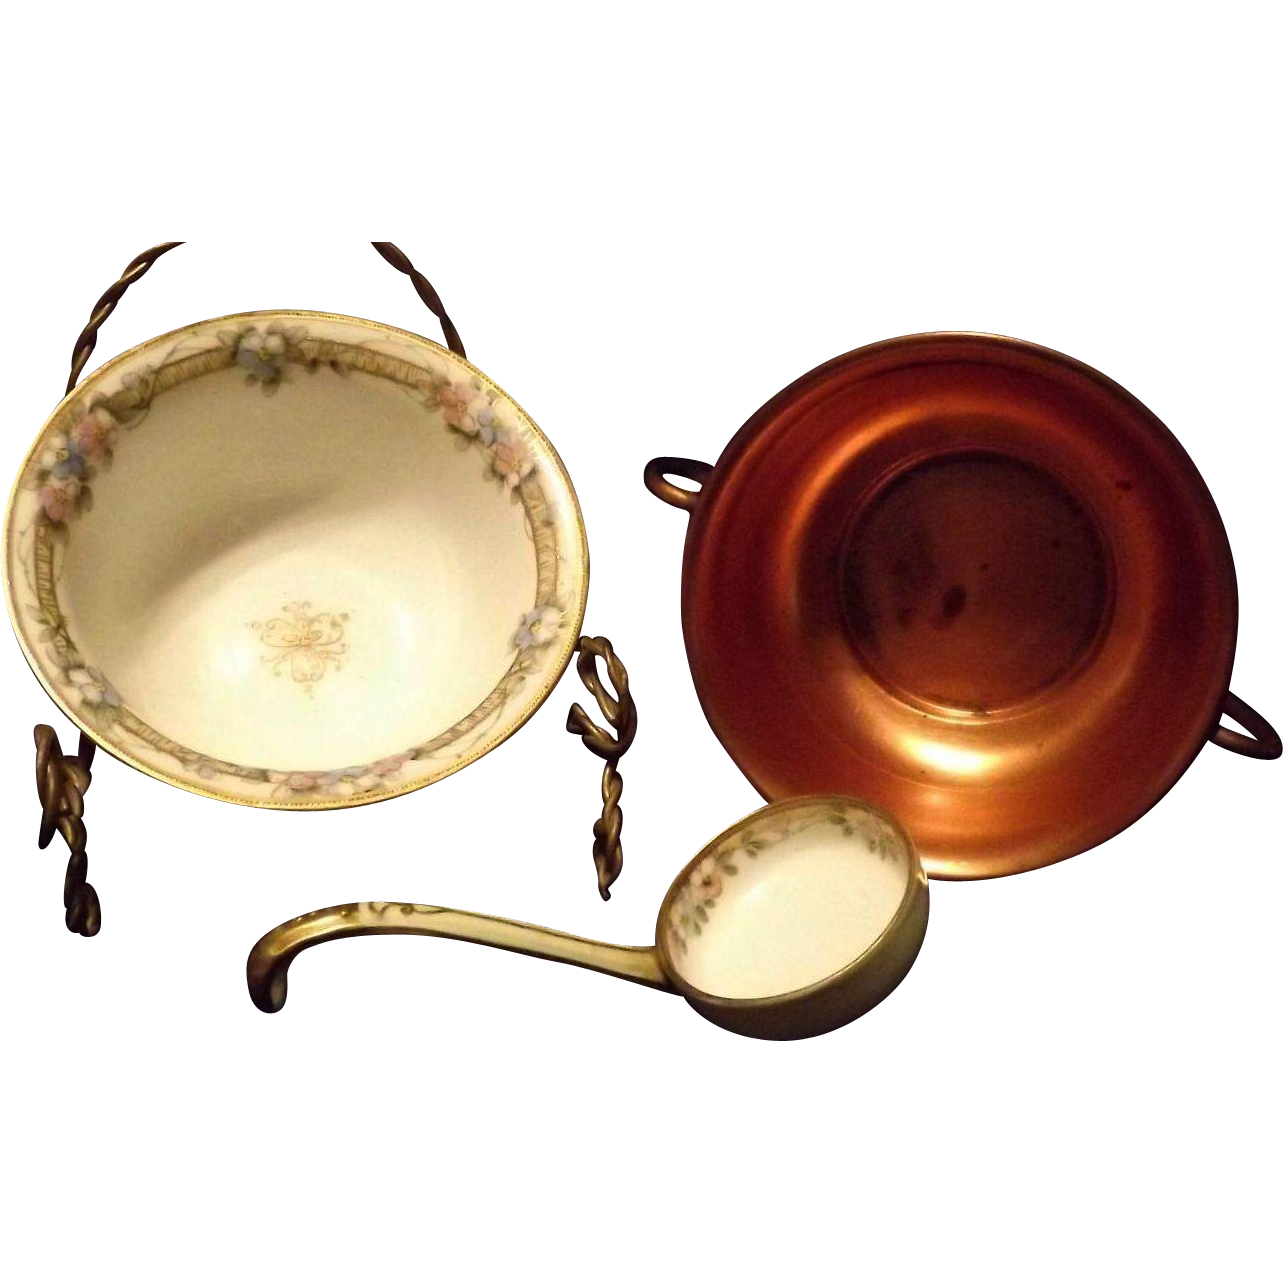 Noritake China Sauce Bowl With Metal Base And Original Ladle